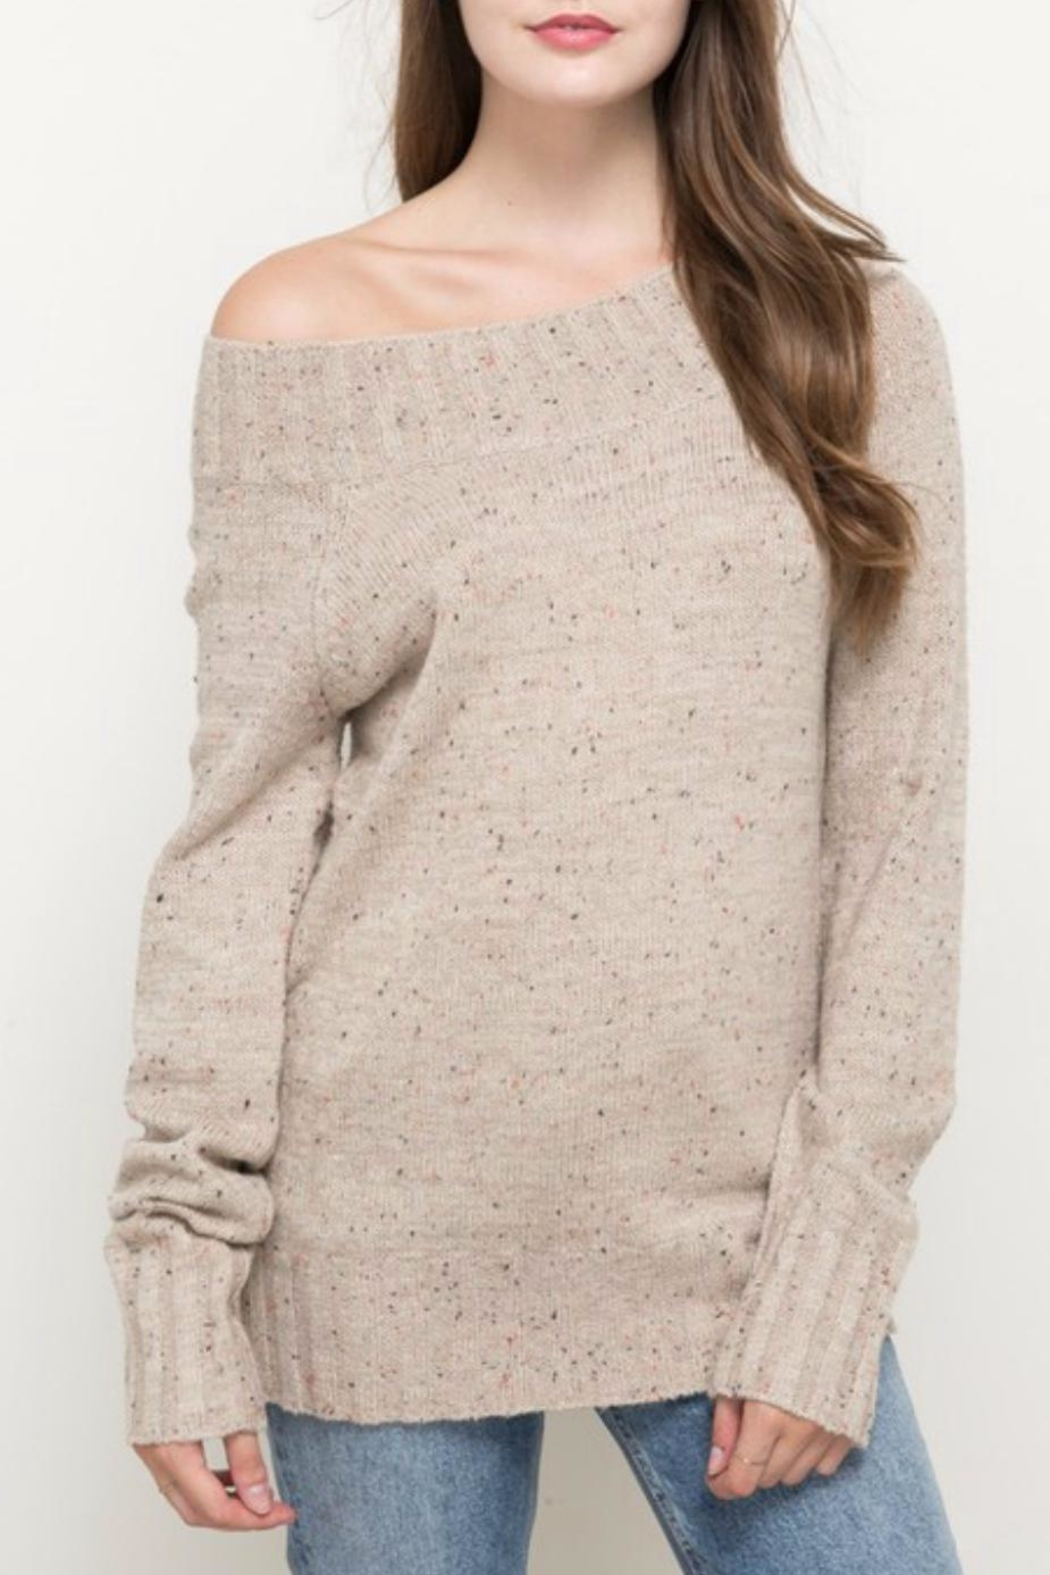 Hem & Thread Oatmeal Sprinkled Sweater - Front Cropped Image